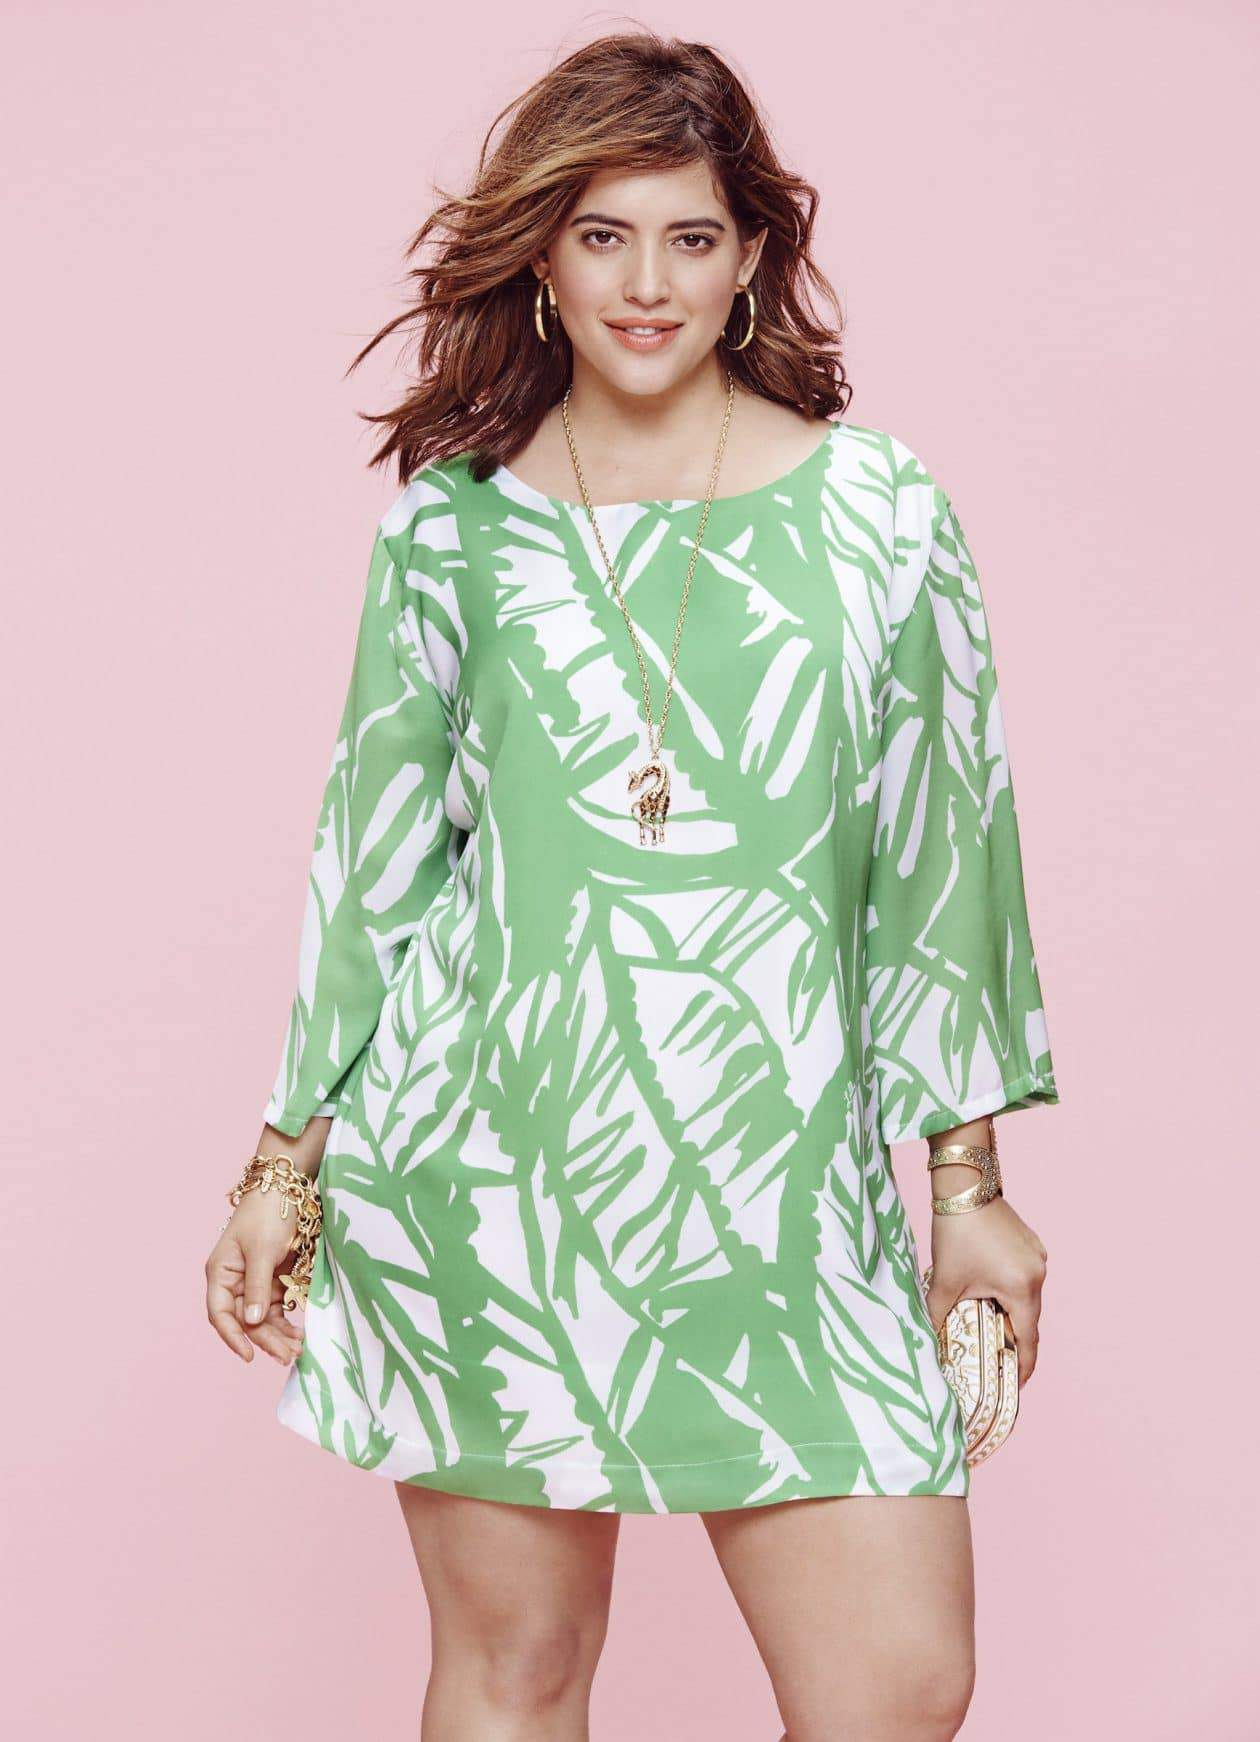 Target Releases the Lilly Pulitzer LookBook with Plus Size Looks